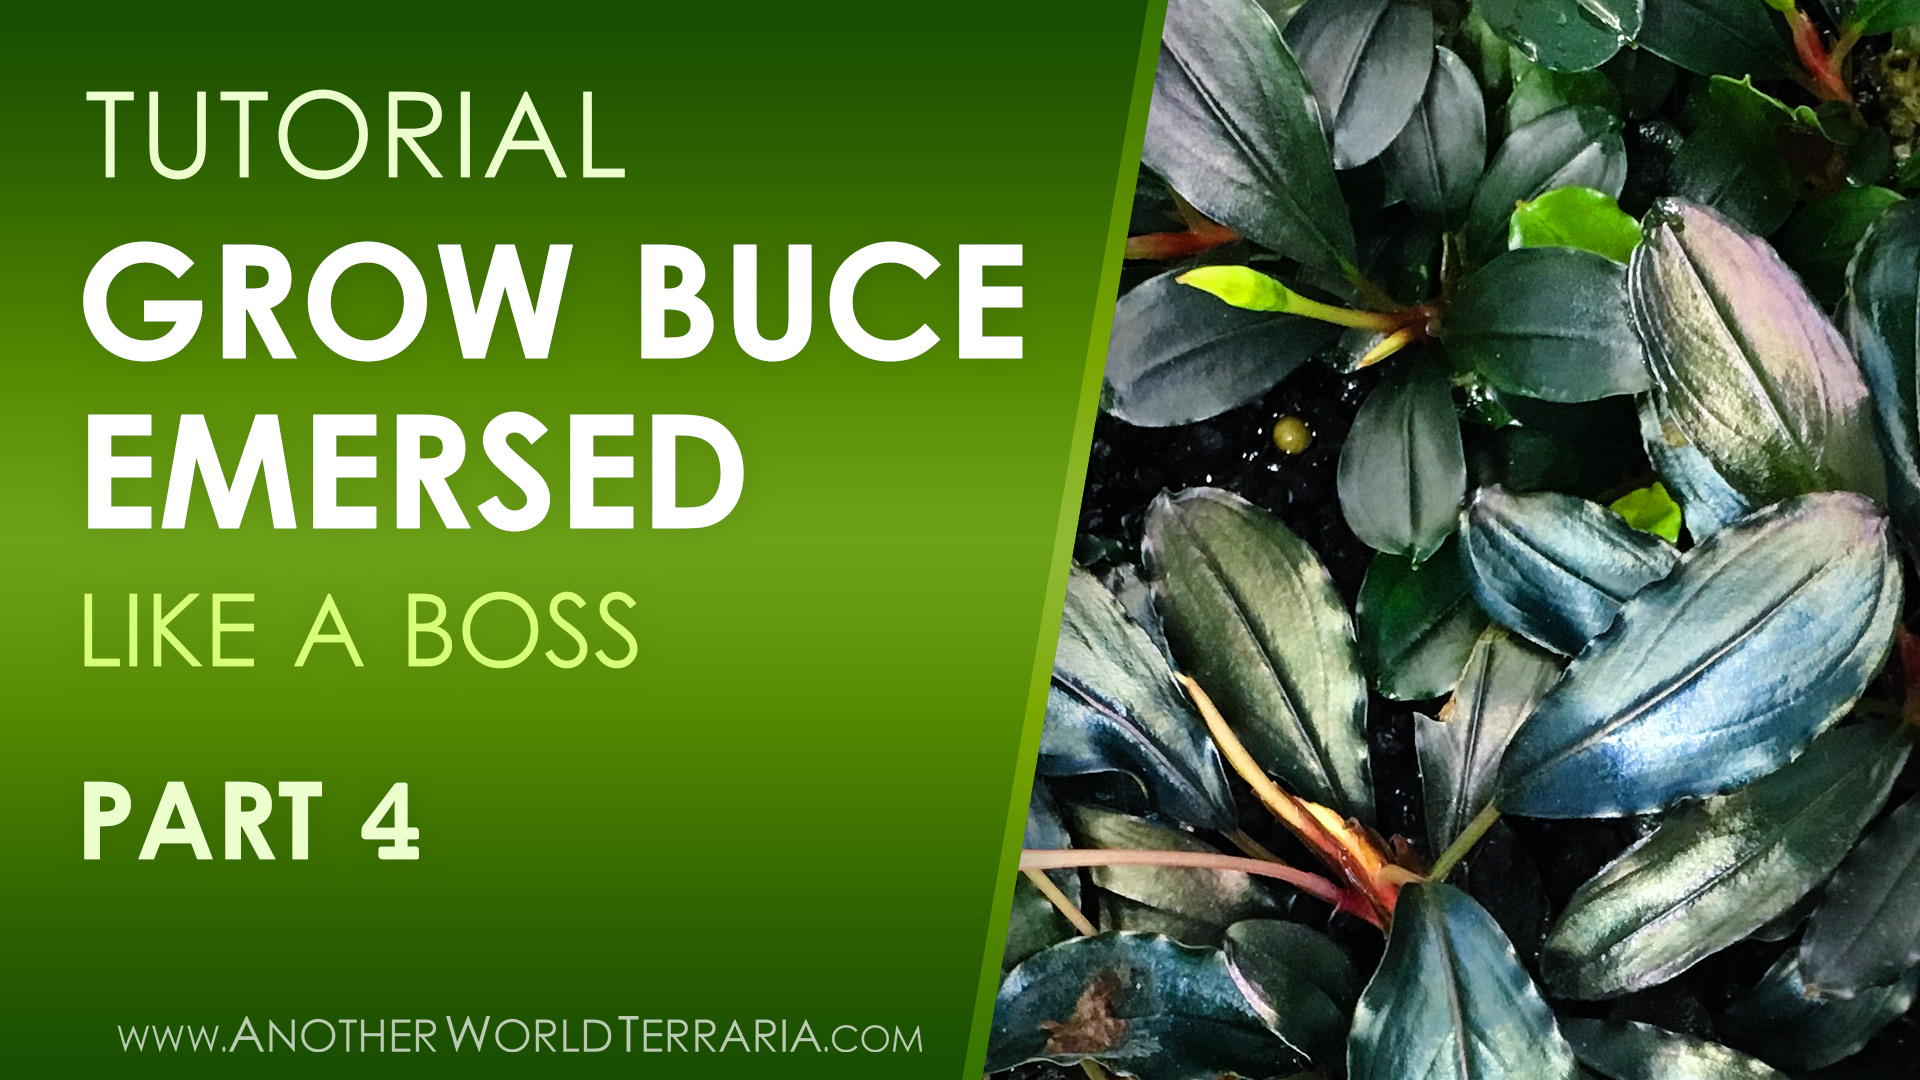 How to Grow Buce Emersed (Like a Boss) - Part 4